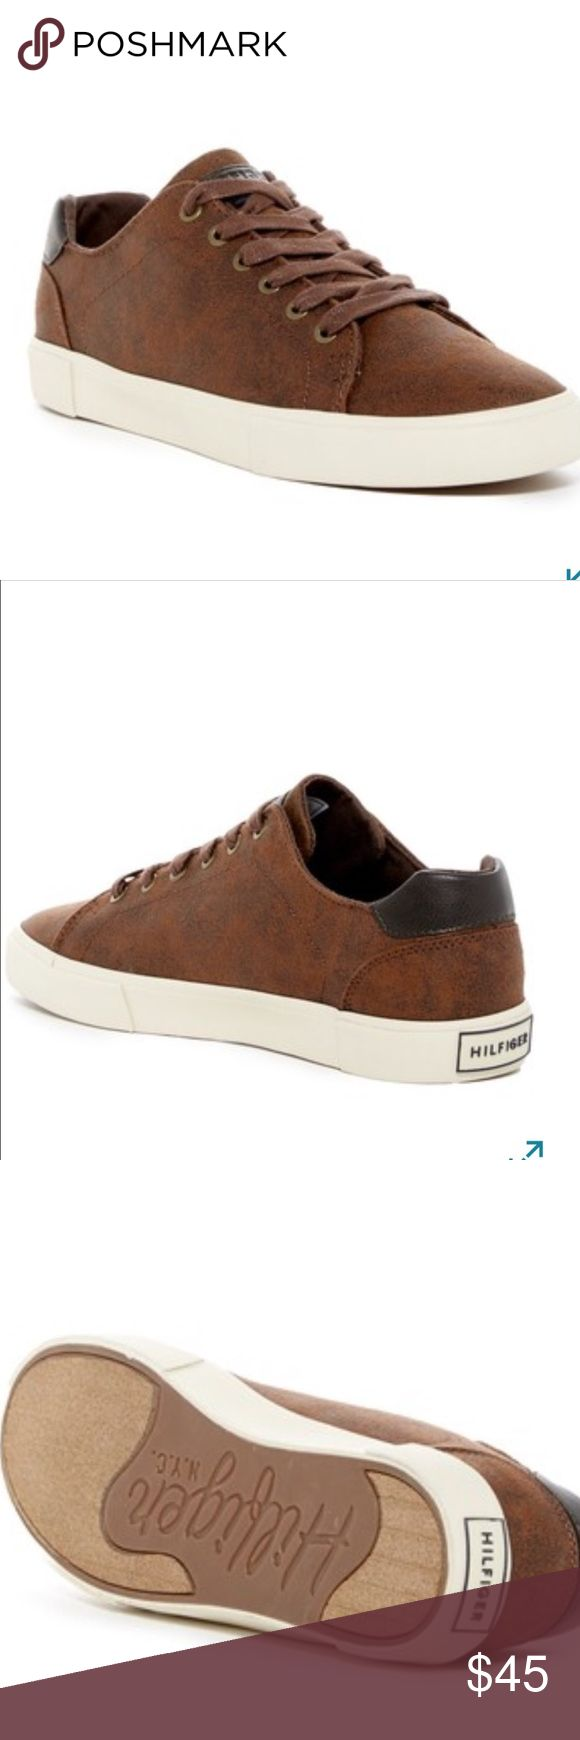 Tommy Hilfiger brown sneakers Brand new size 9 Tommy Hilfiger sneakers. Tommy Hilfiger Shoes Sneakers